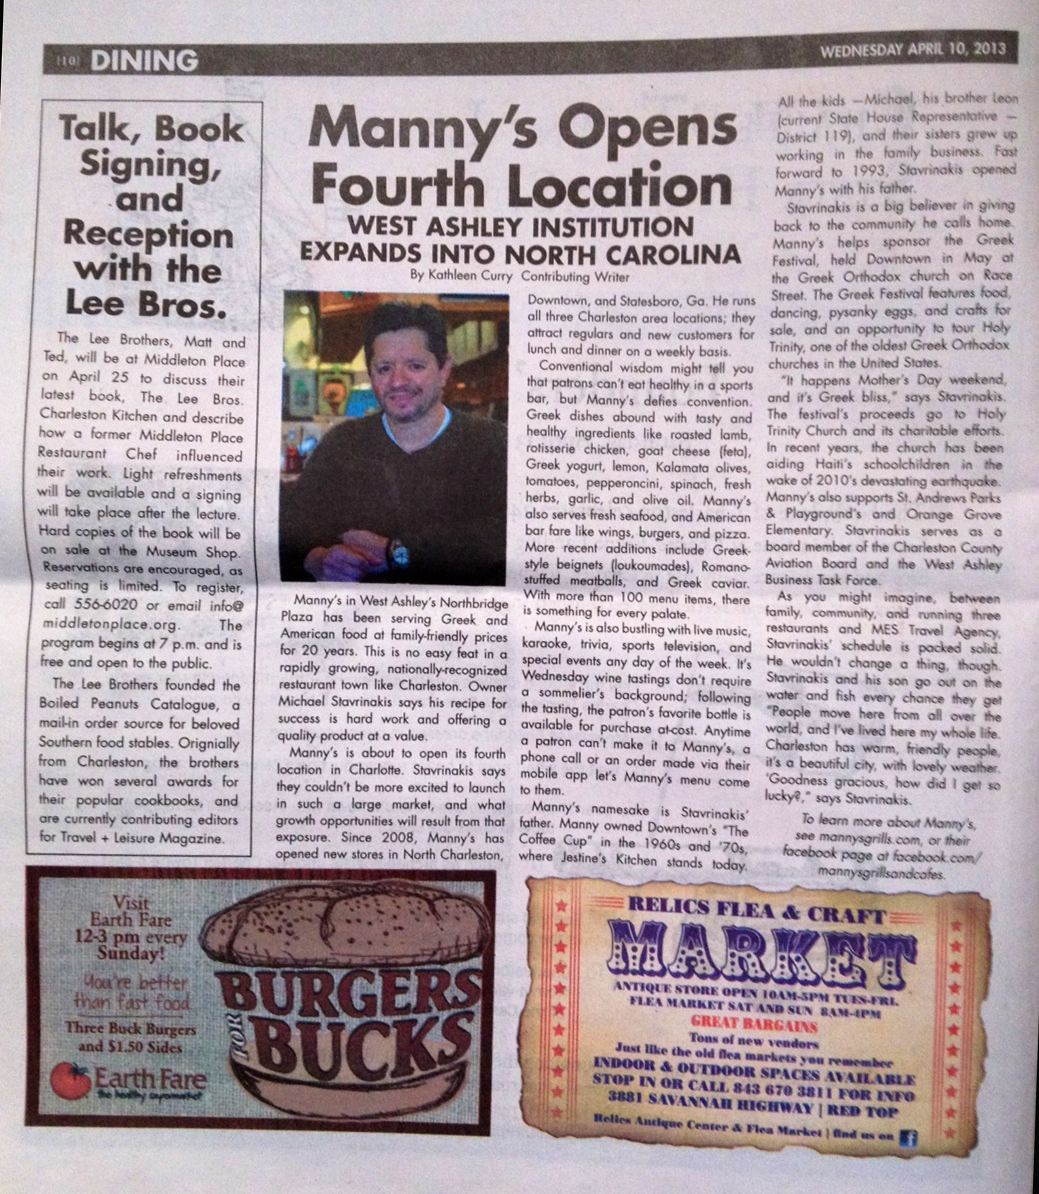 Manny's Grill opens its fourth location in North Carolina